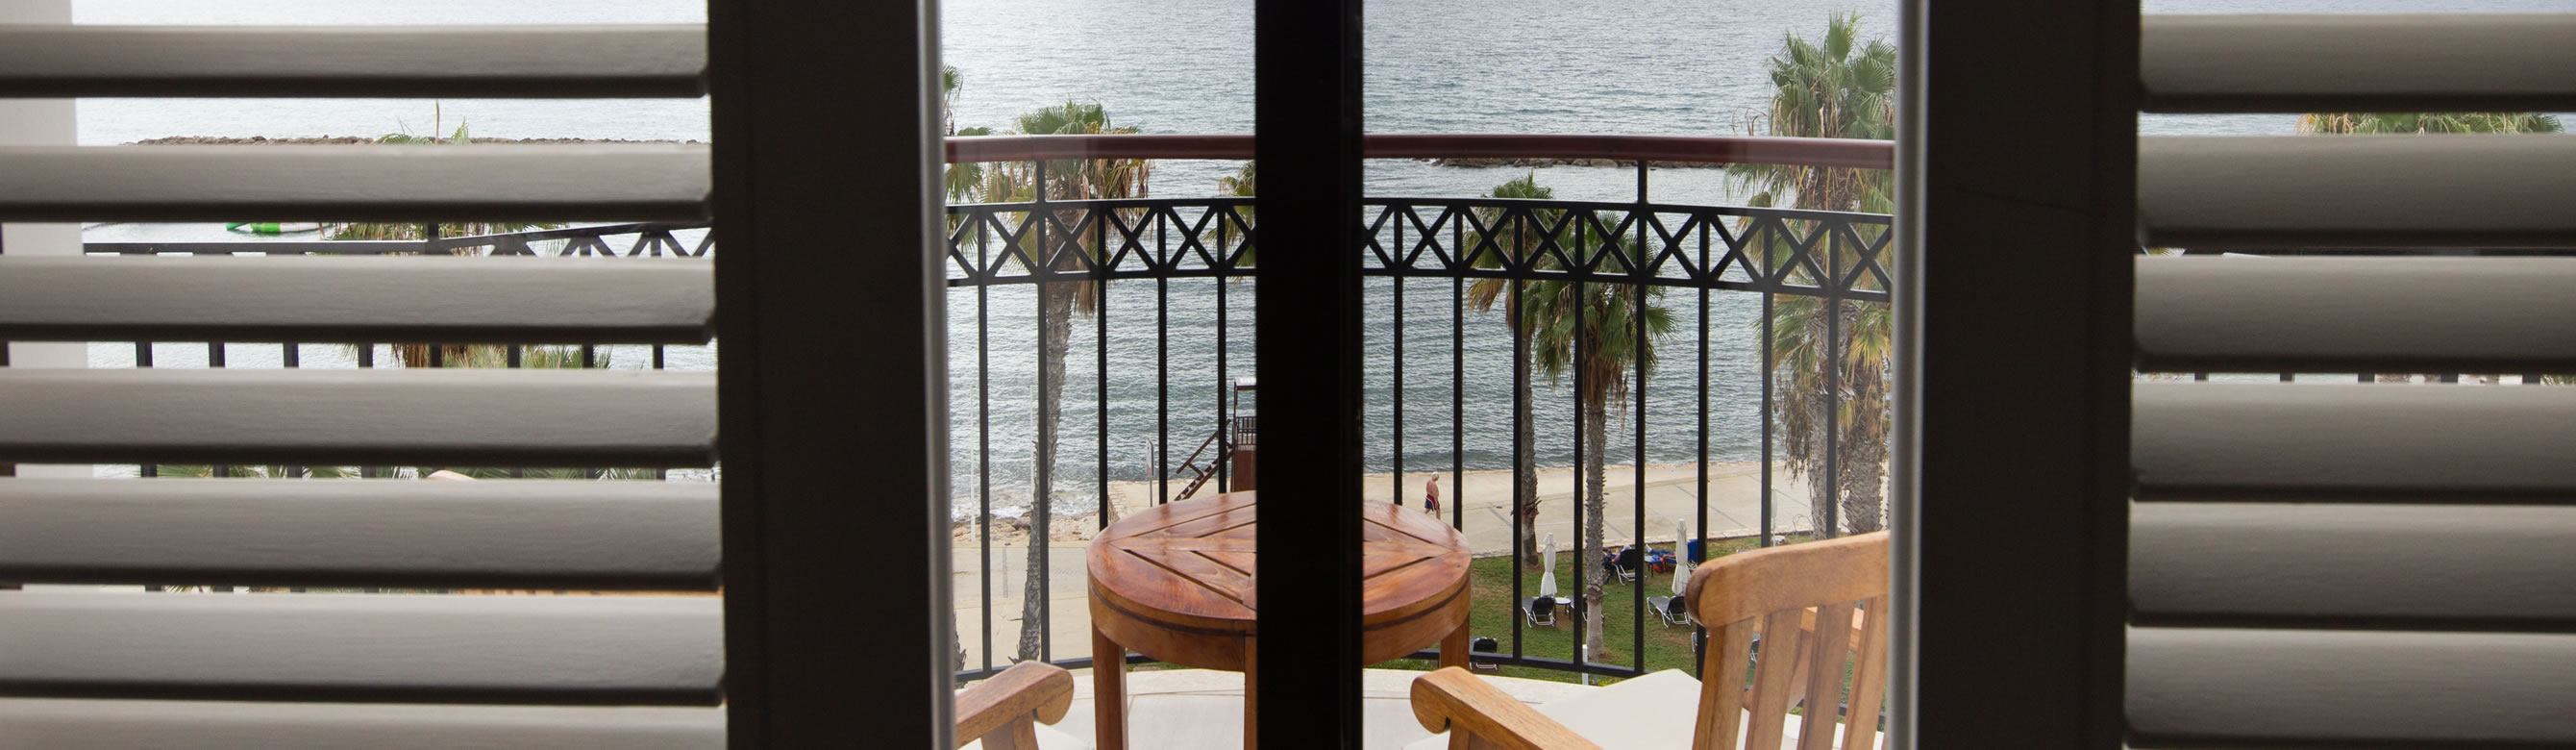 annabelle_accommodation_sea_view_balcony.jpg